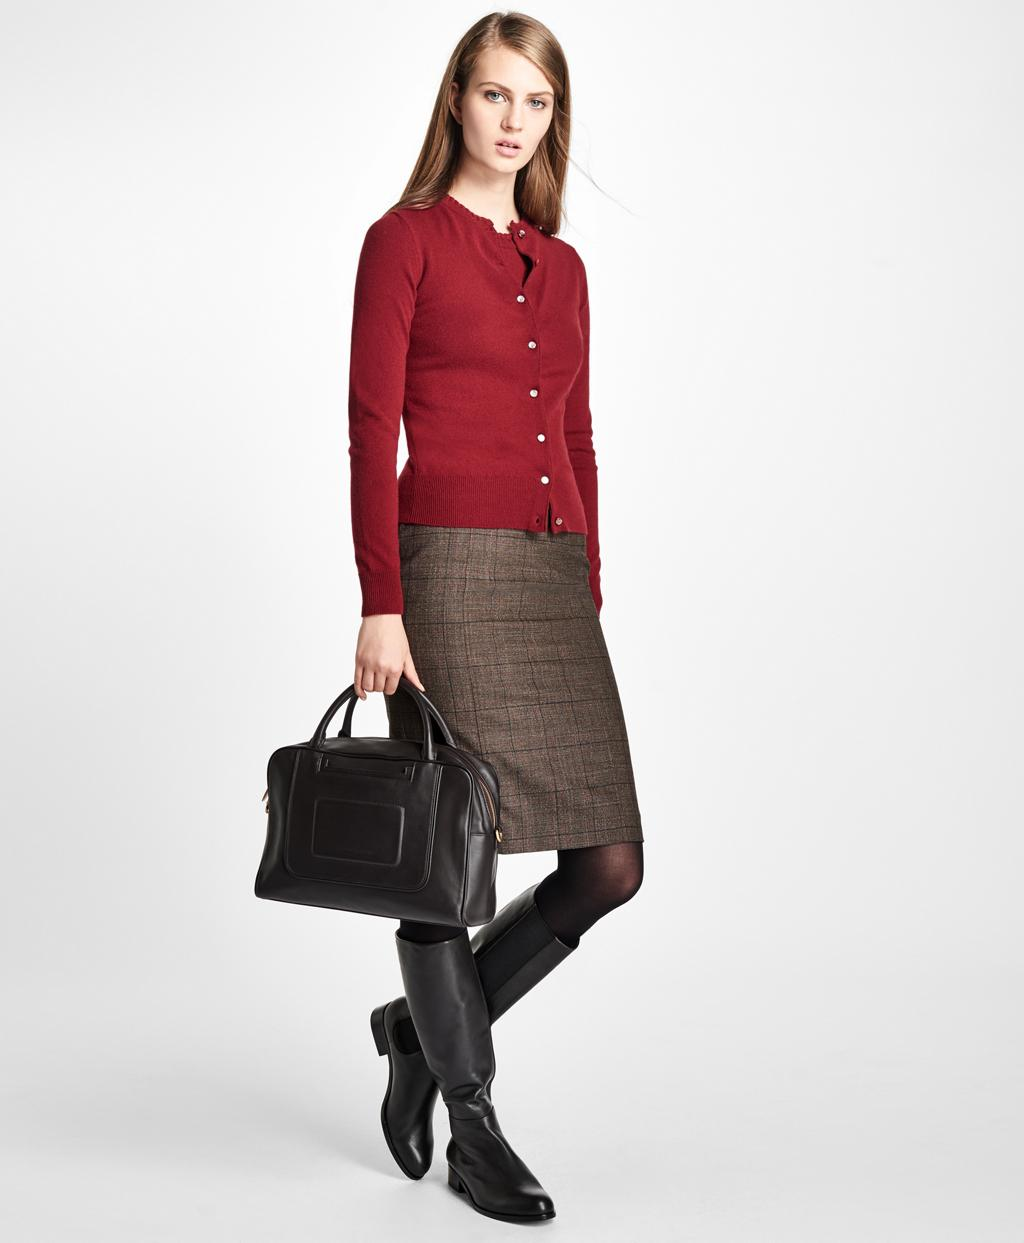 Brooks brothers Long-sleeve Cashmere Cardigan in Red   Lyst